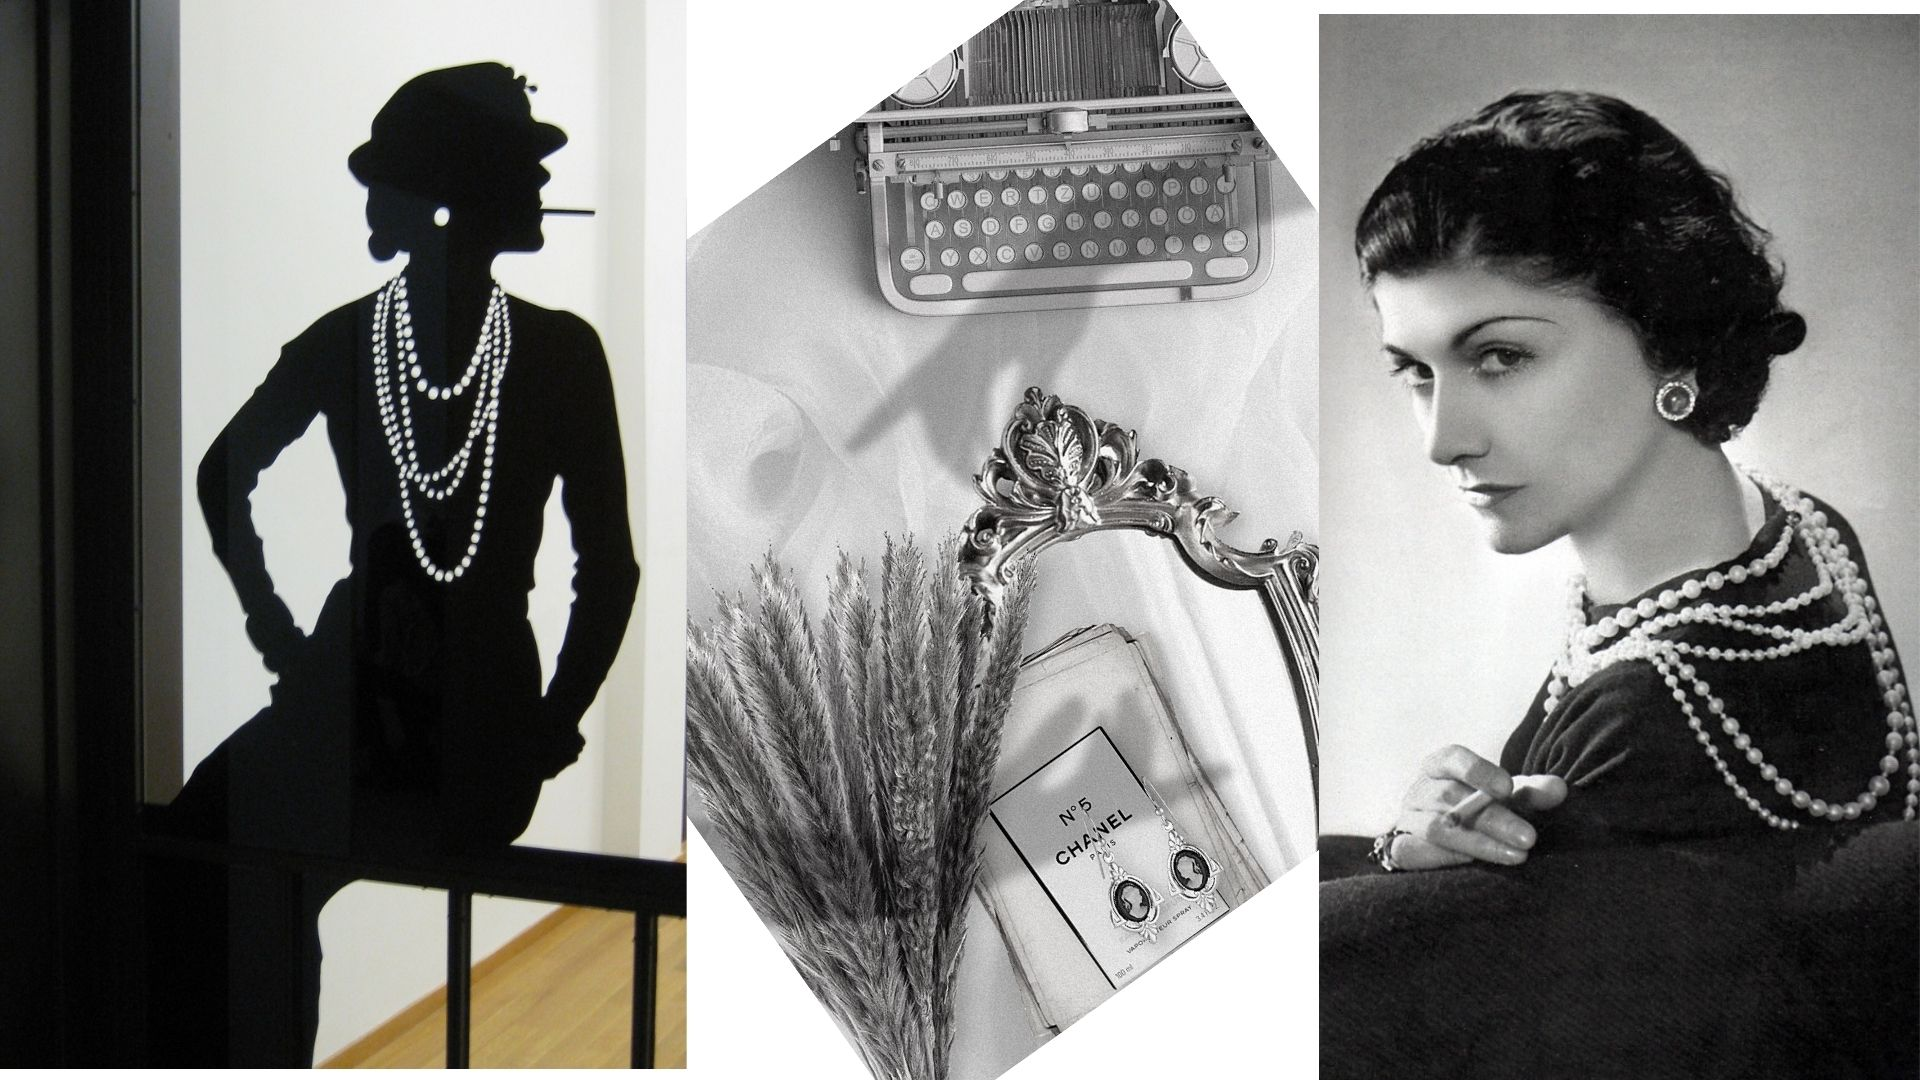 Image credits : https://www.flickr.com/photos/likeabalalaika/3720176418/ https://commons.wikimedia.org/wiki/File:Coco_Chanel_tentoonstelling.JPG